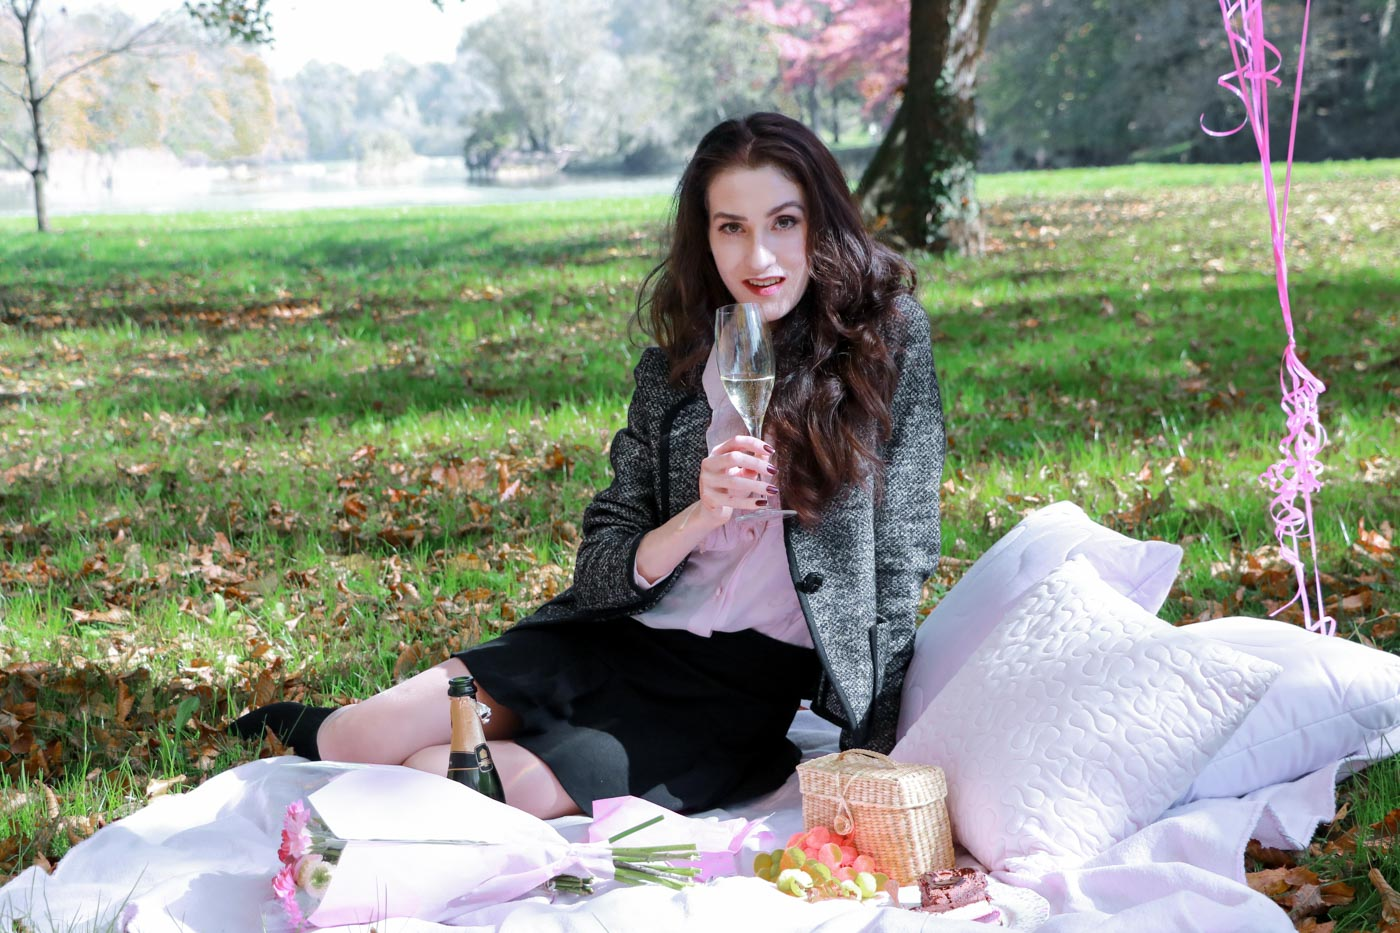 Fashion Blogger Veronika Lipar of Brunette from Wall Street having a moet moment to celebrate her birthday this October